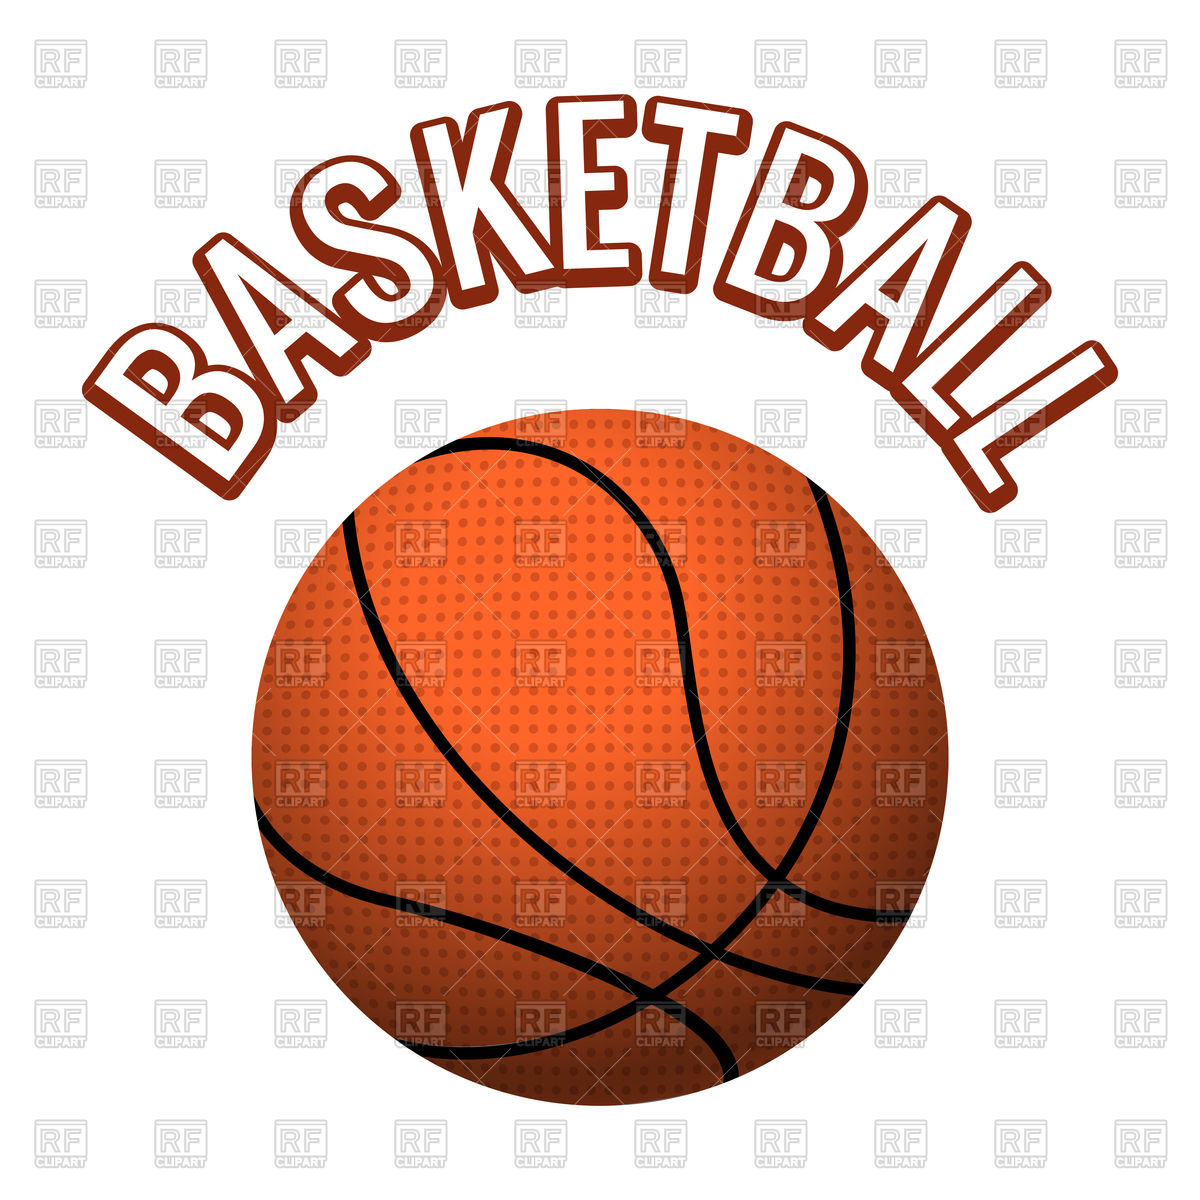 1200x1200 Textured Basketball Ball Isolated On White Background Vector Image